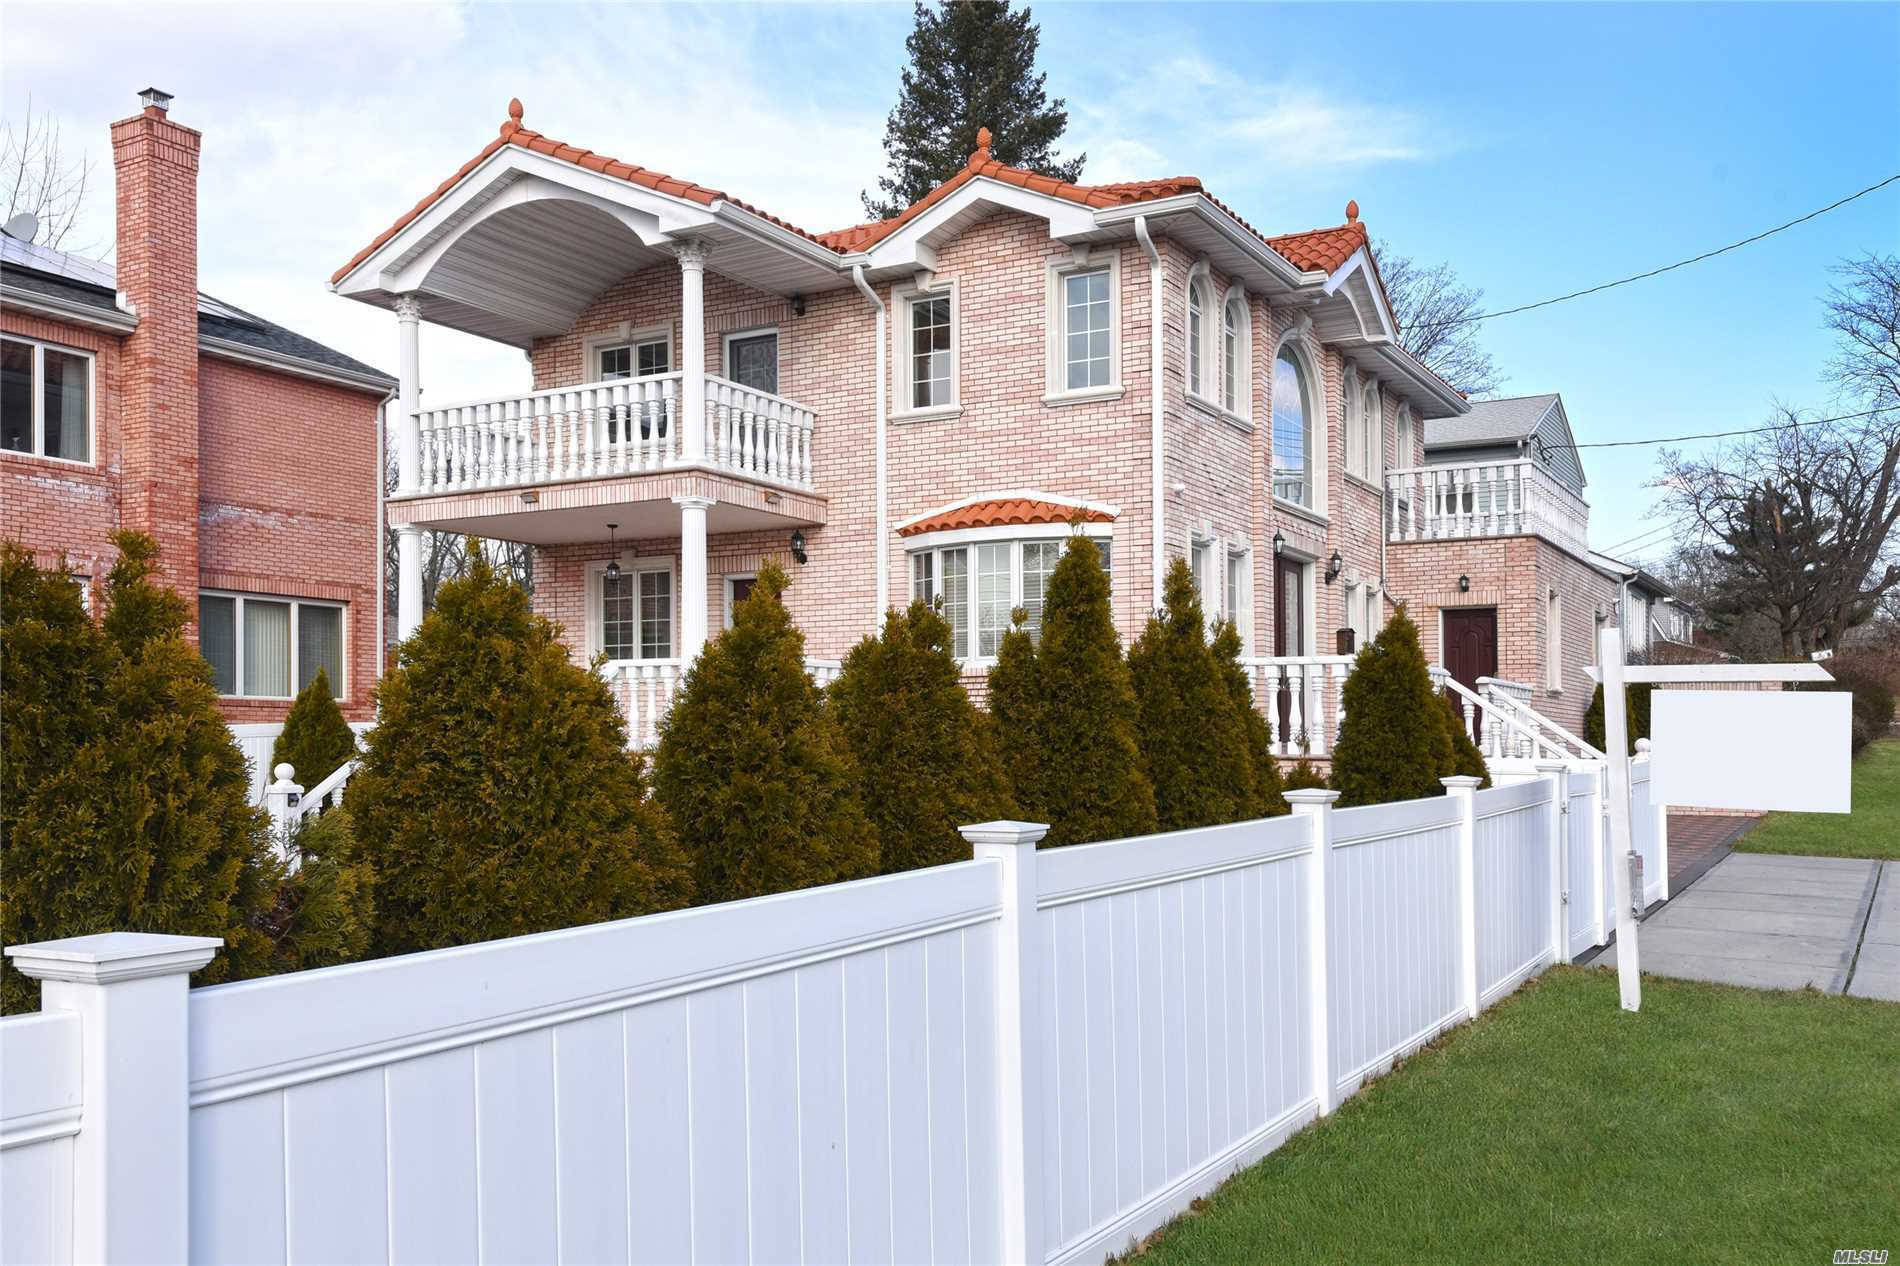 This Luxurious Custom-Built Colonial Offers 3, 300 Sqft Of Designer Living Space With Incredible Craftsmanship And Exquisite Architectural Details. This Home Features 4 Spacious Bedrooms, 3.5 Custom-Designed Baths, Theater Room. A Perfect Combination For Daily Luxury Living And Great Entertaining. Conveniently Located Only 2 Blocks To Northern Blvd For Public Transportation, Shopping And Dining. School District 26